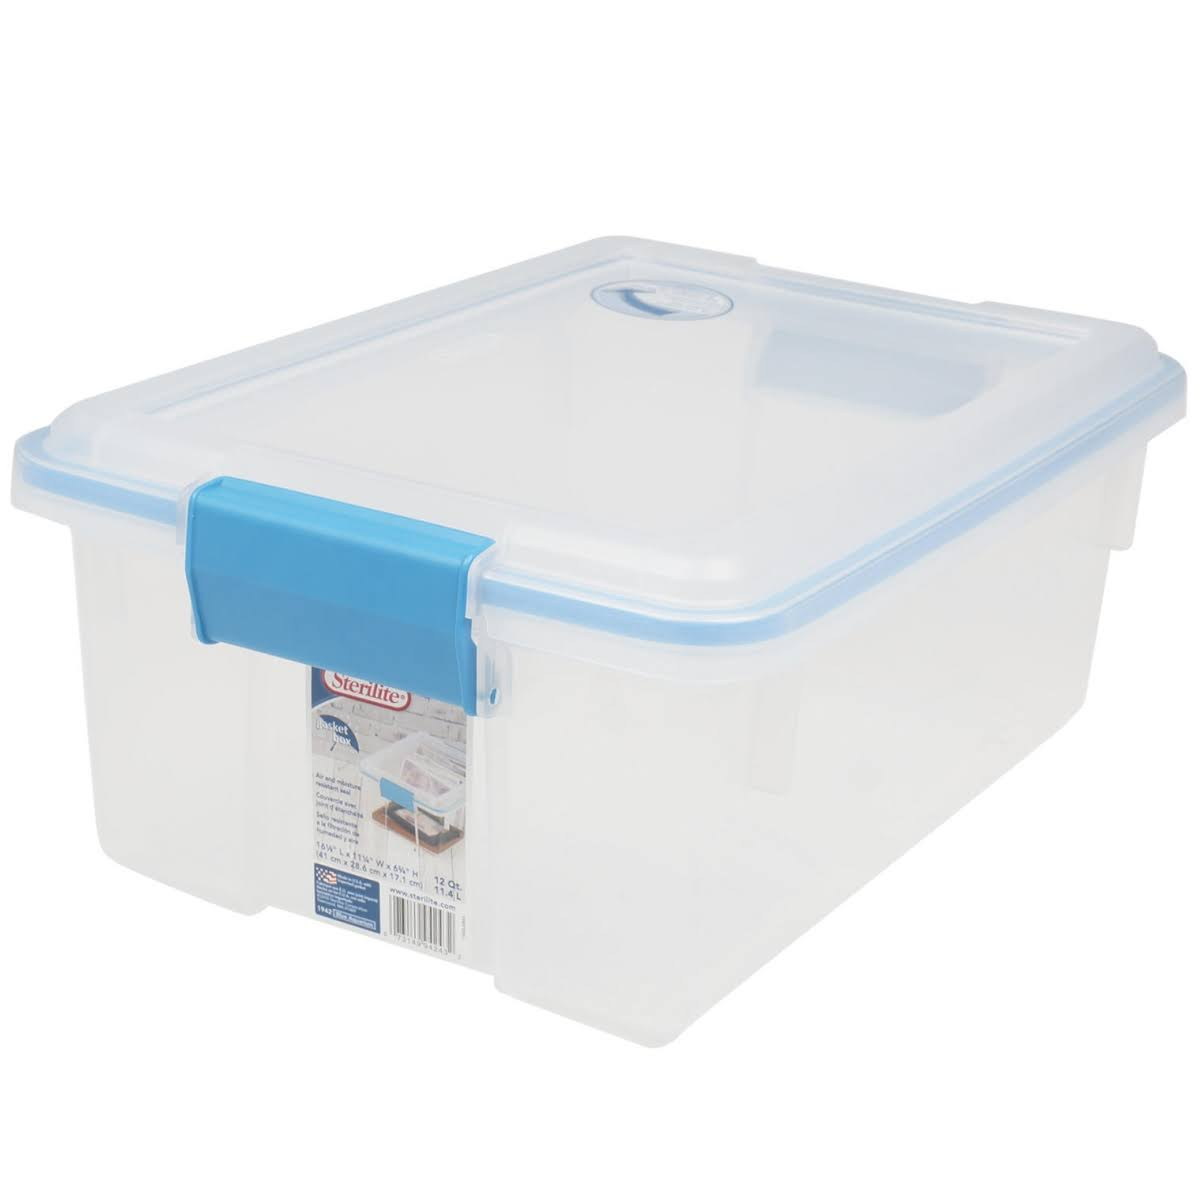 Sterilite Gasket Box Clear with Blue Latches 12qt